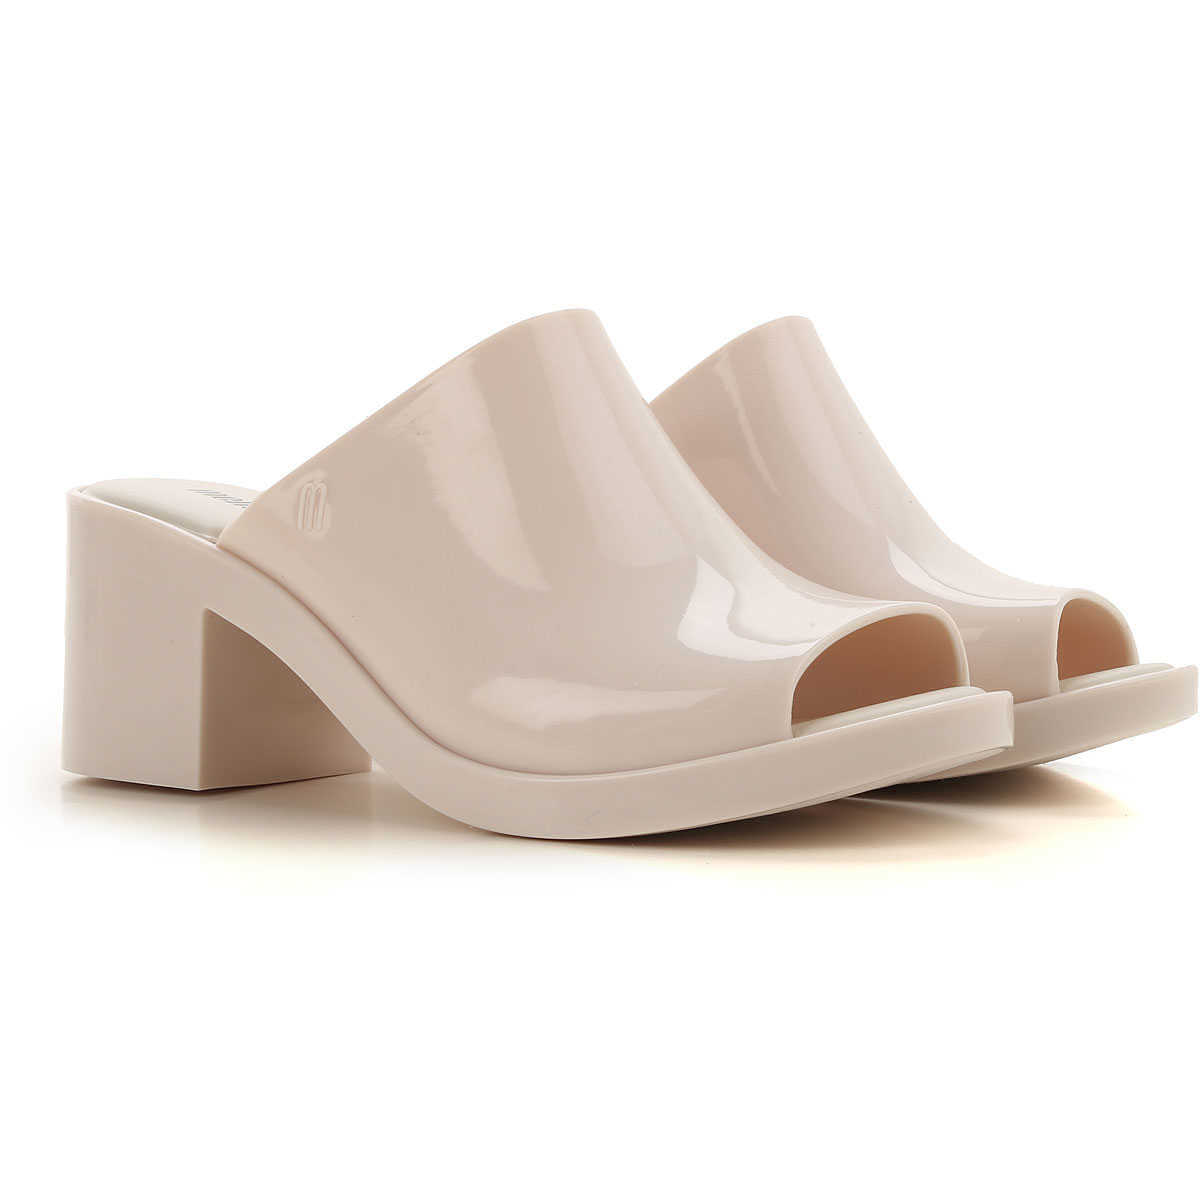 Melissa Wedges for Women Beige Canada - GOOFASH - Womens HOUSE SHOES